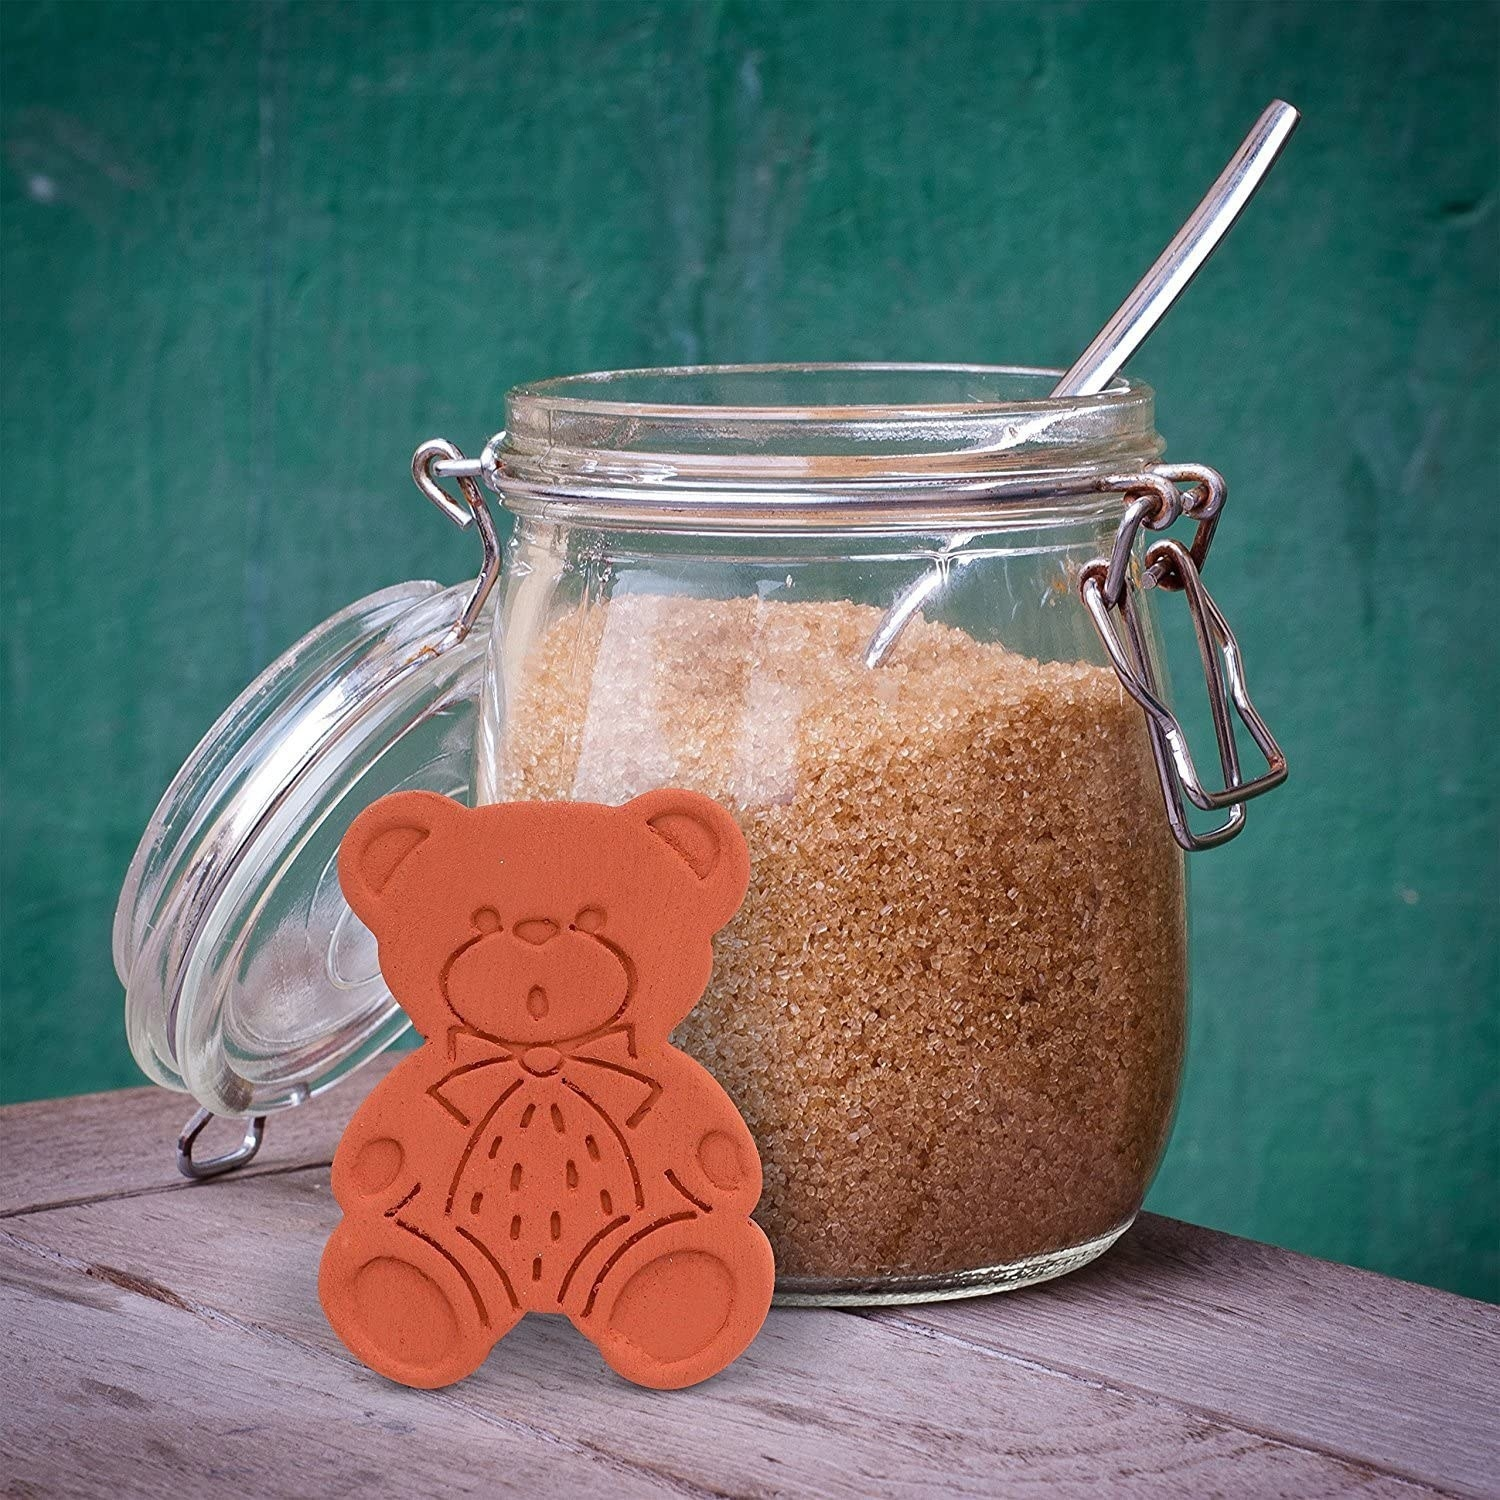 A small, bear-shaped terracotta plate next to a glass jar of brown sugar.